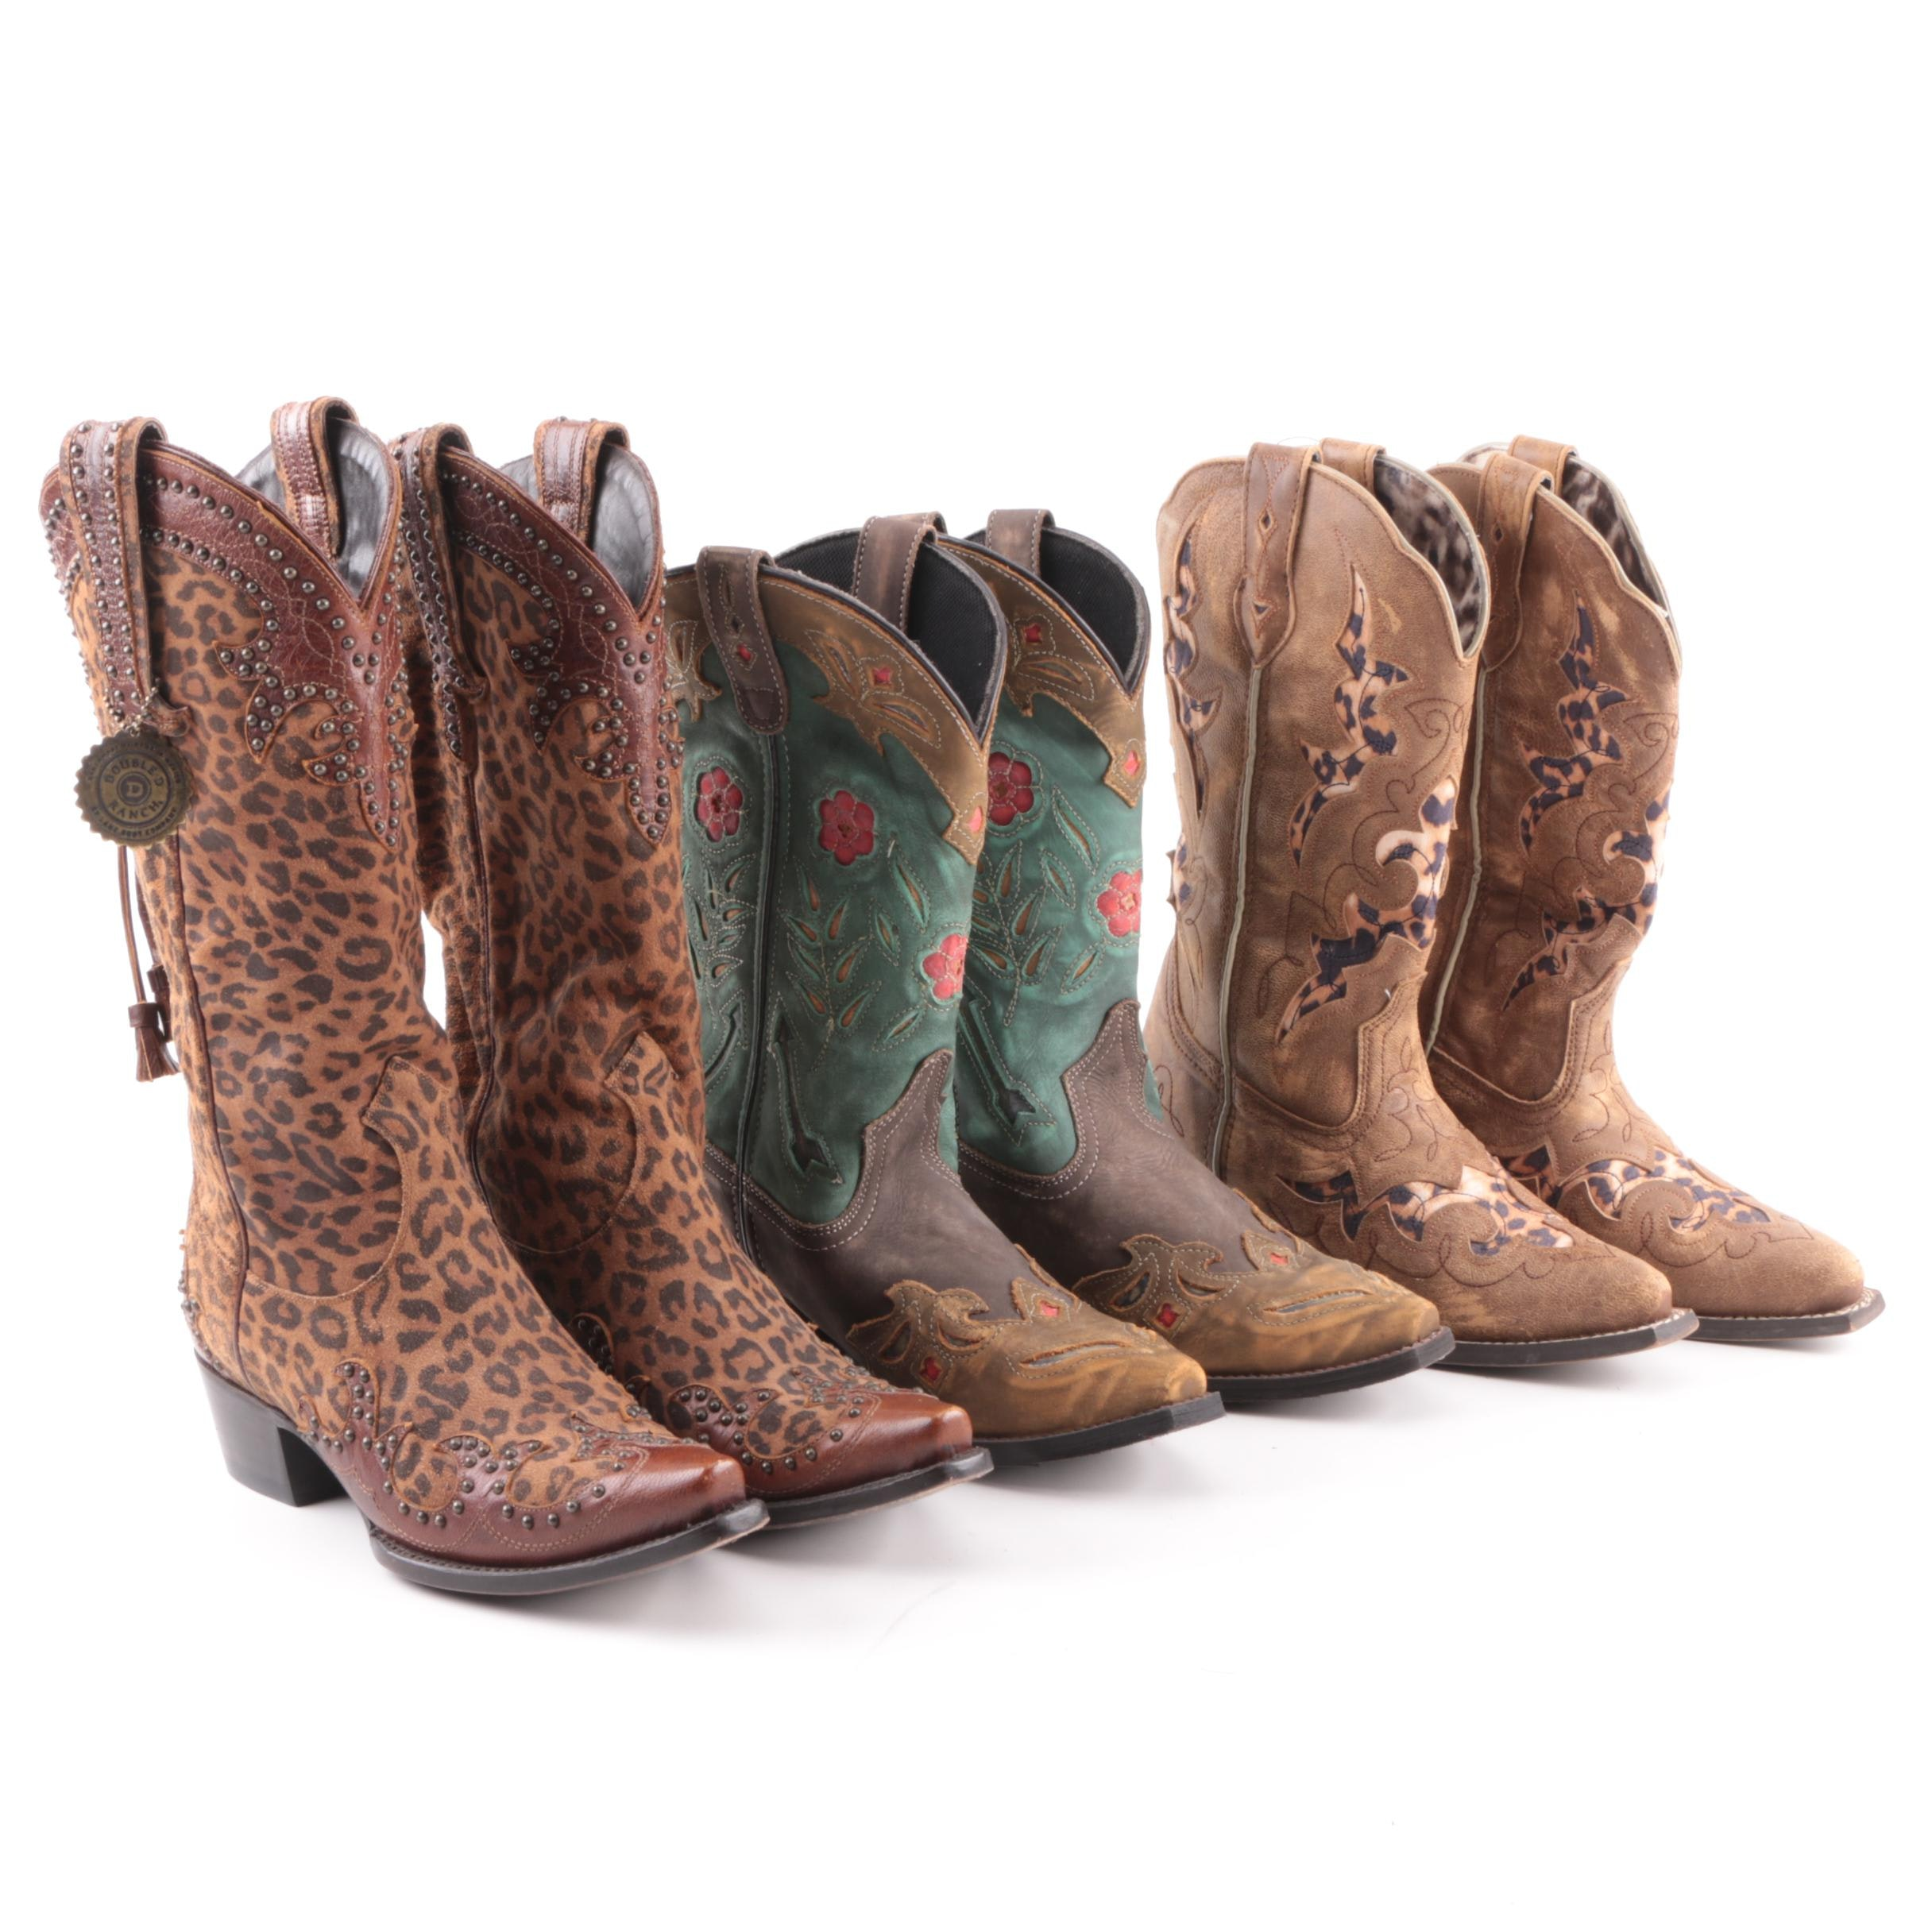 Women's Double D Ranch and Laredo Western Boots